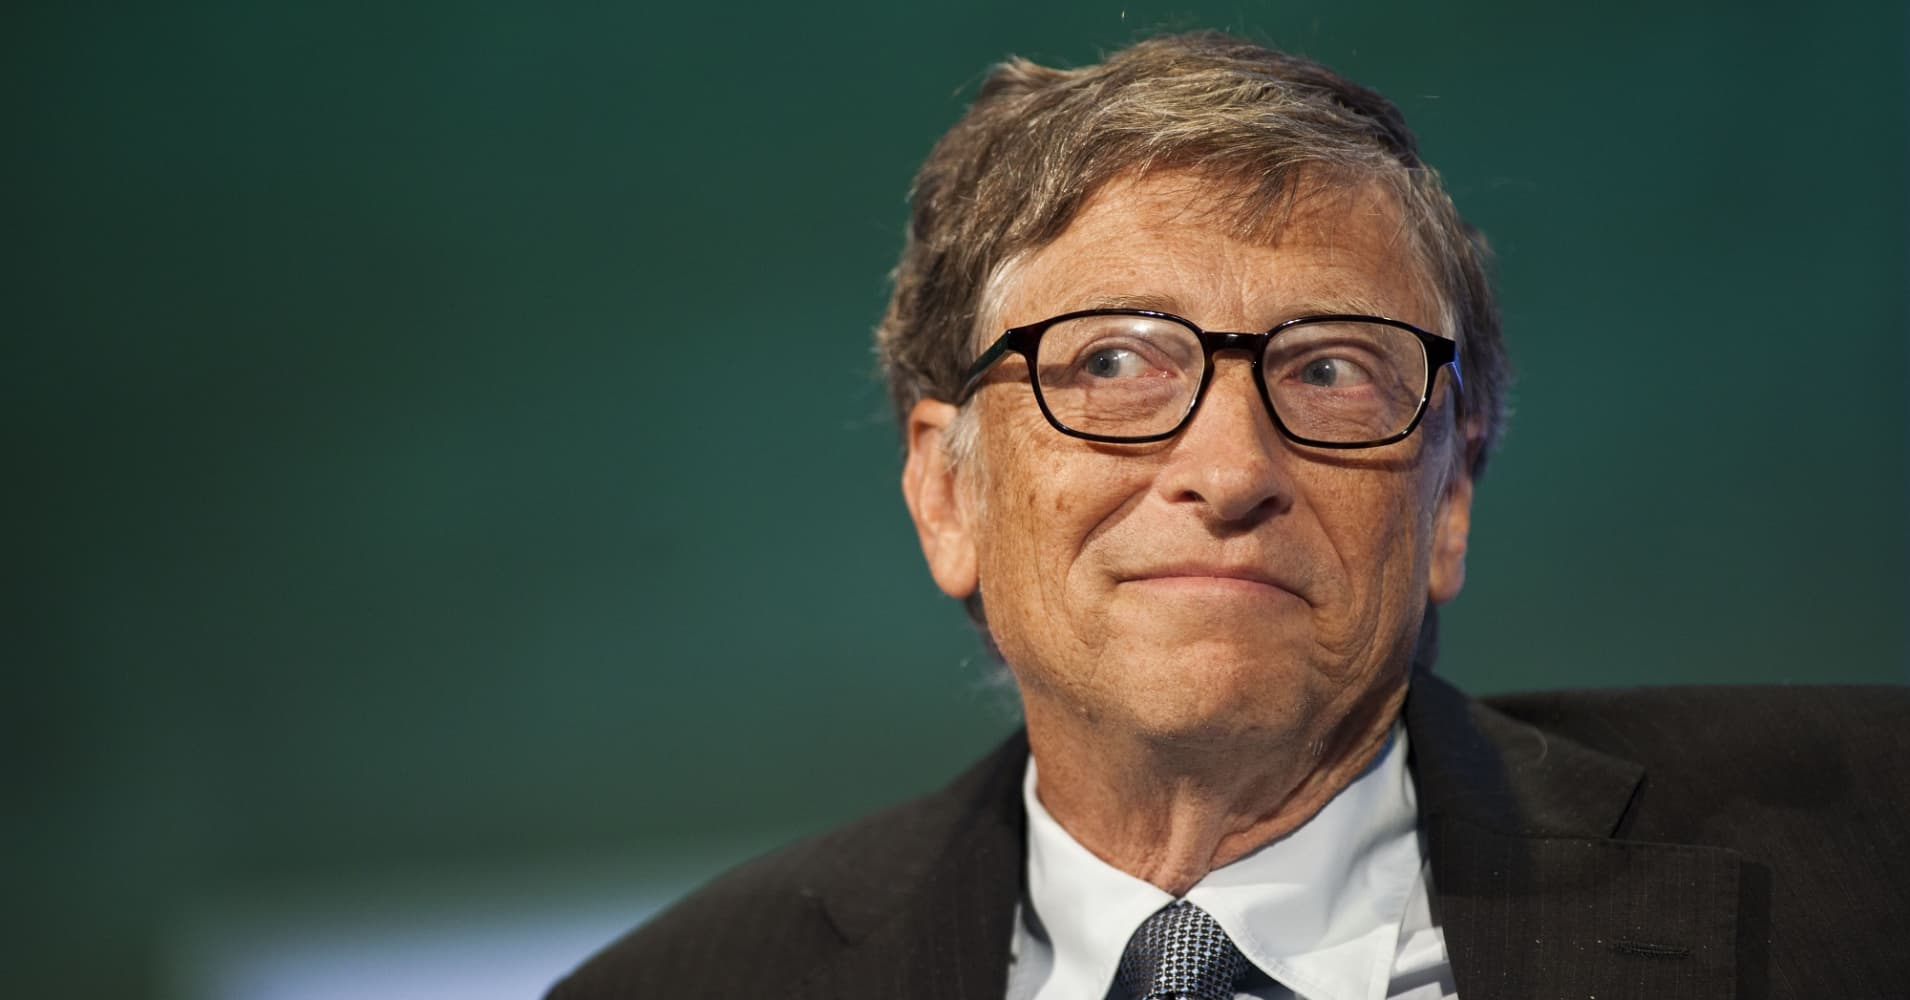 Image result for bill gates - images